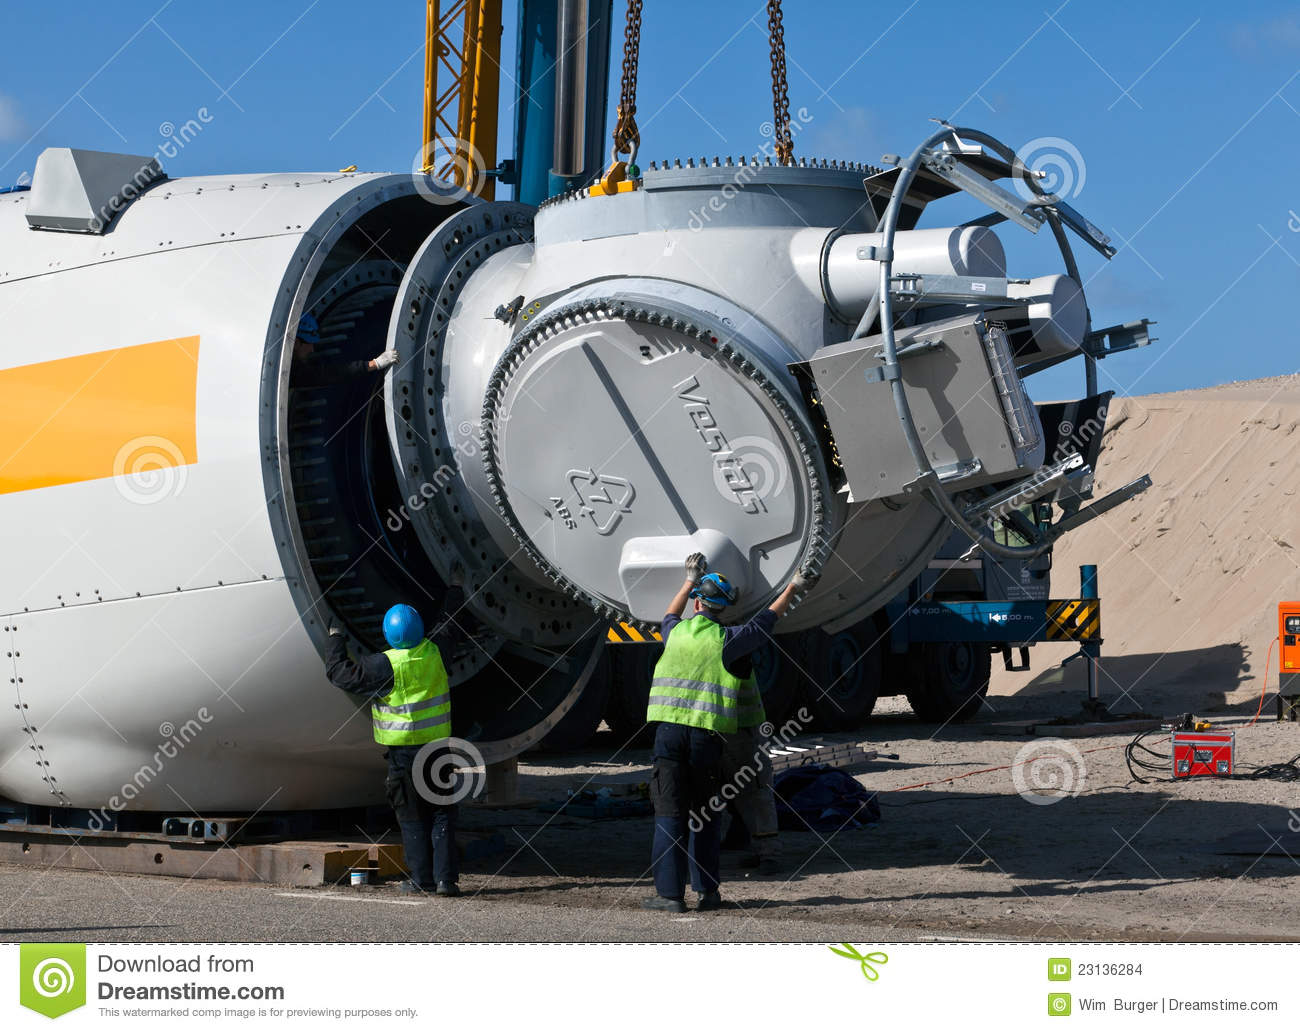 Wind Turbine Construction Site Editorial Stock Image - Image: 23136284